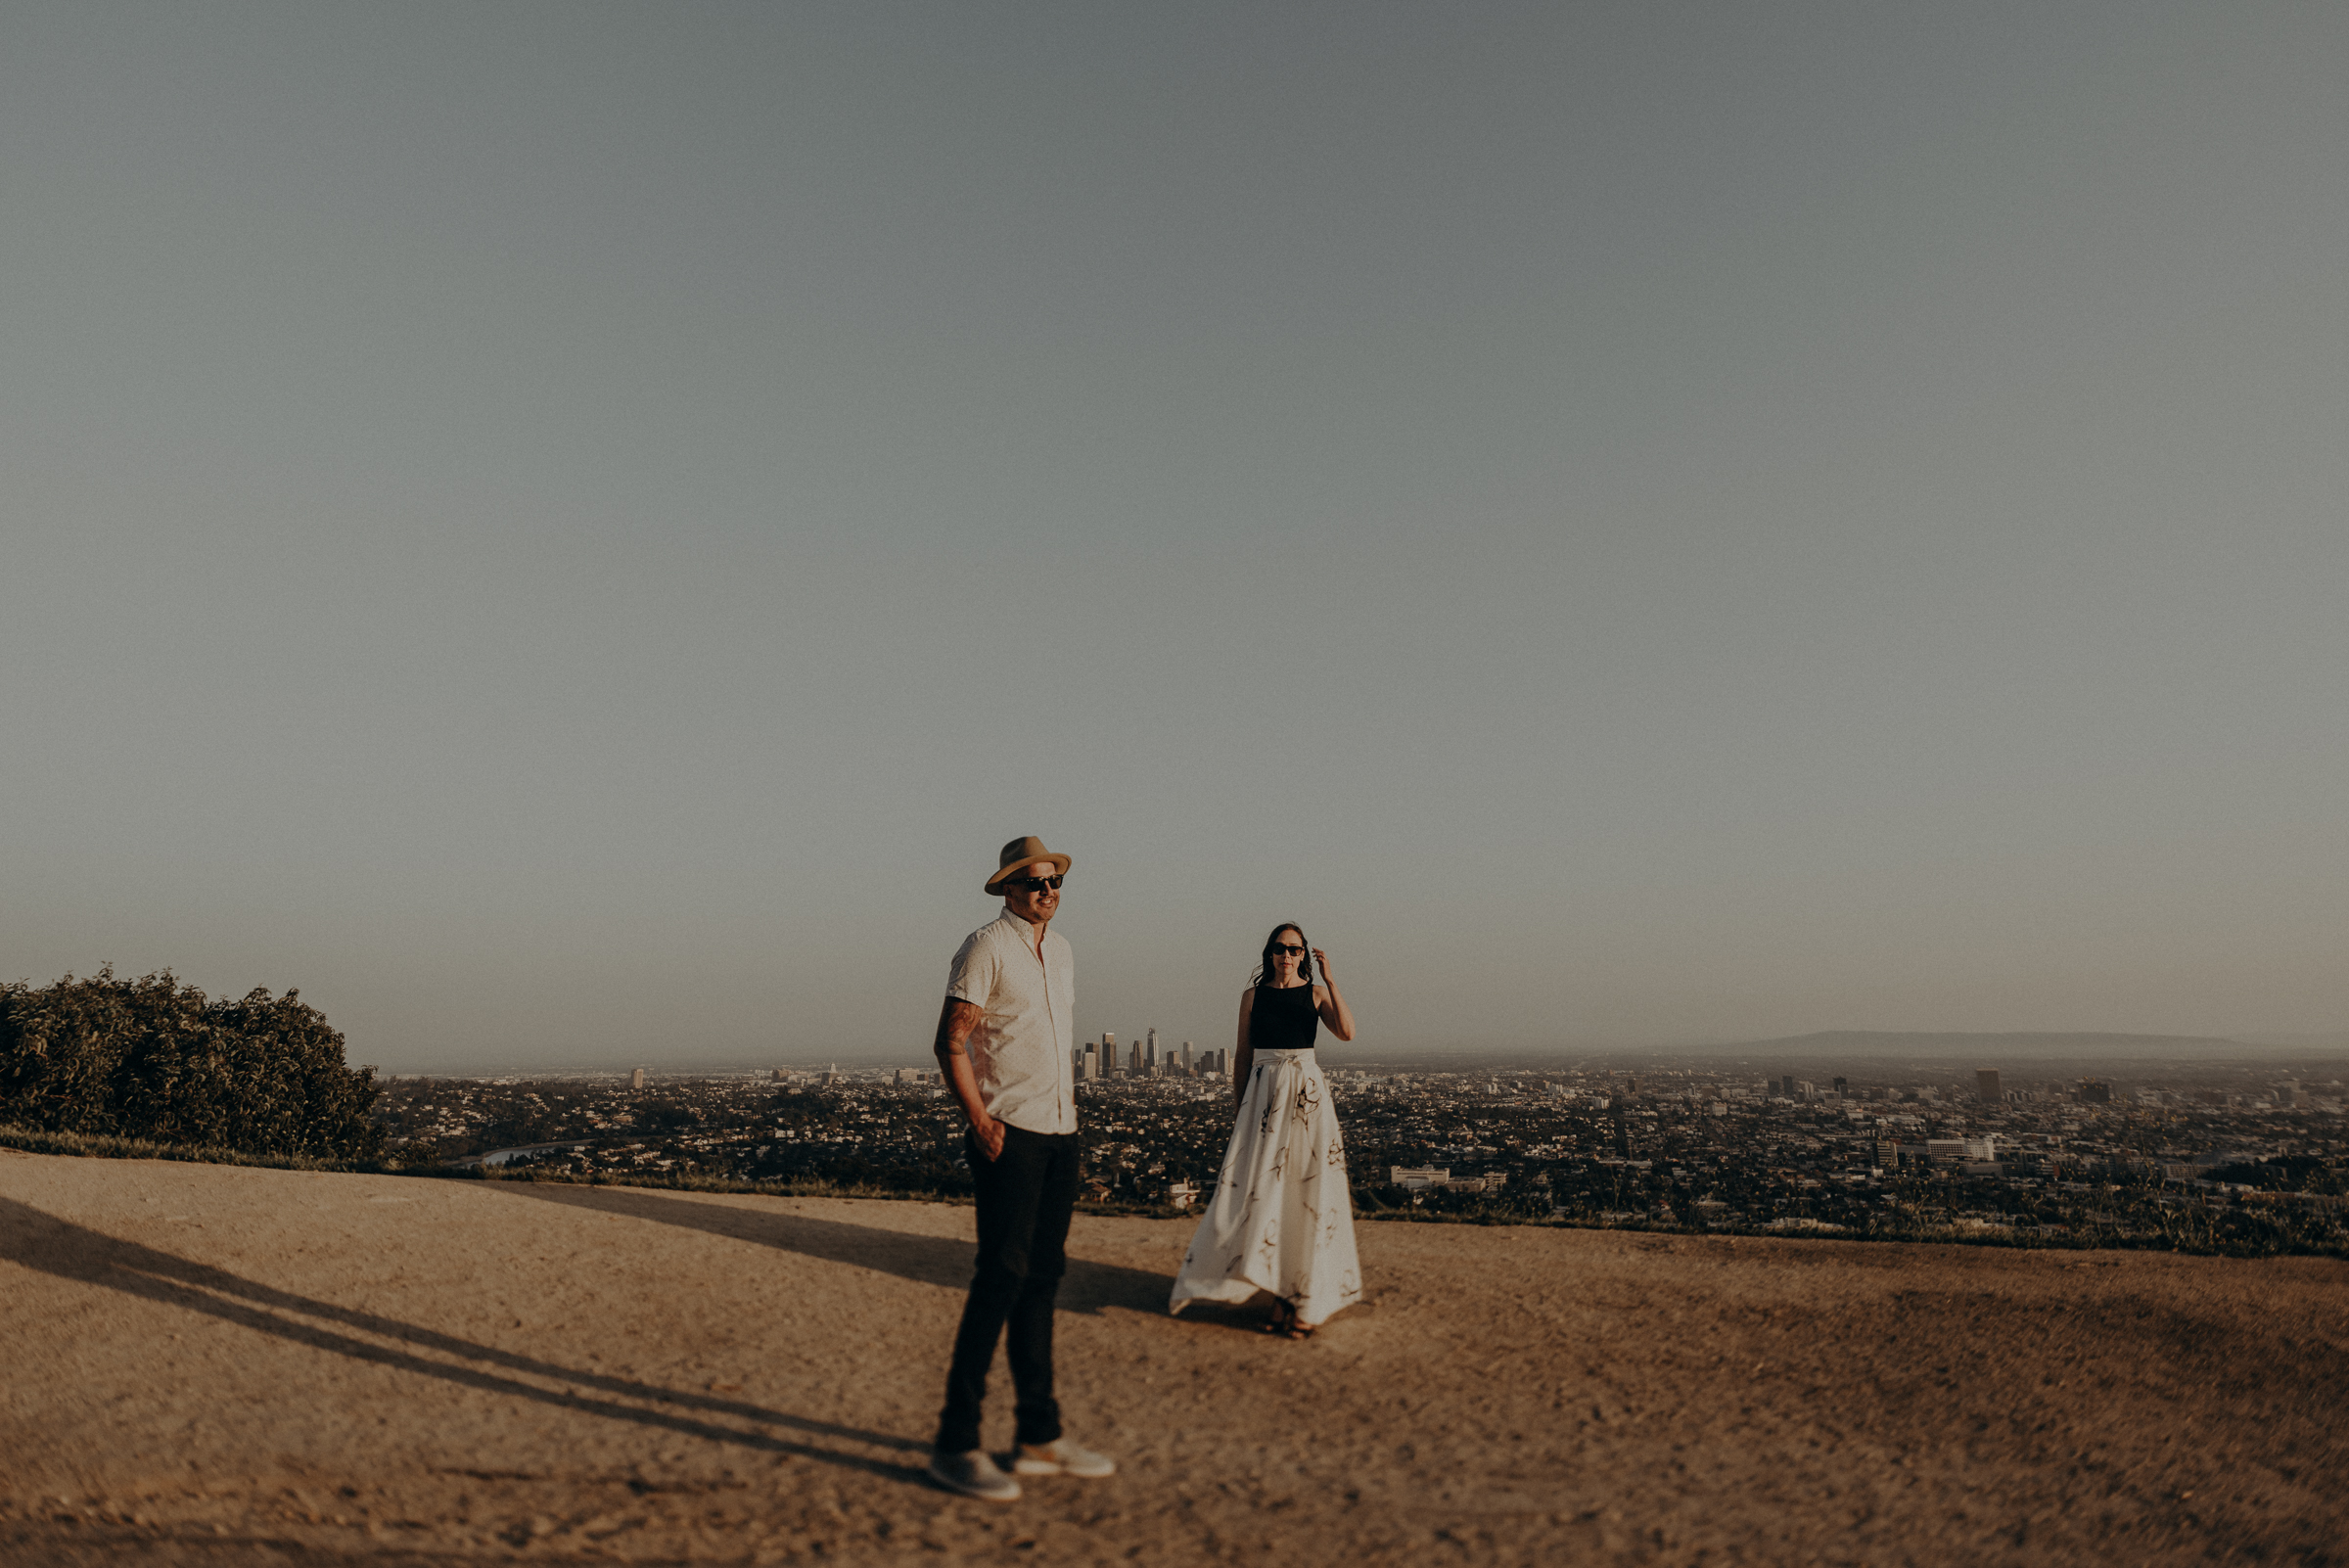 Los Angeles Wedding Photographers - Griffith Park Engagement - IsaiahAndTaylor.com-034.jpg